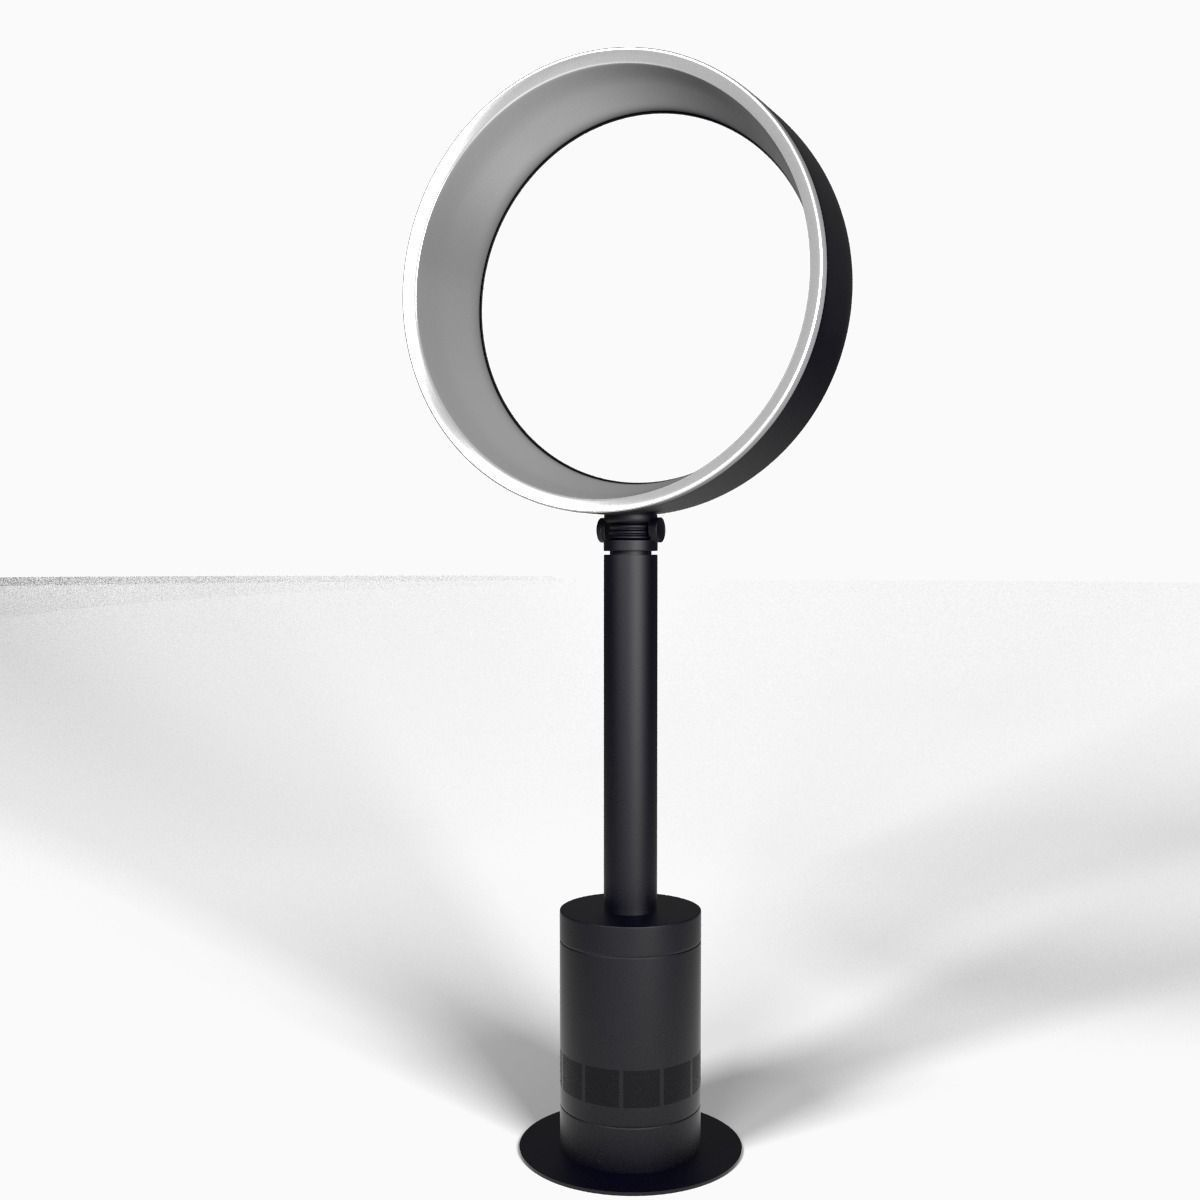 industrial pedestal lasko best reviews fan residential control remote for cyclone dyson and